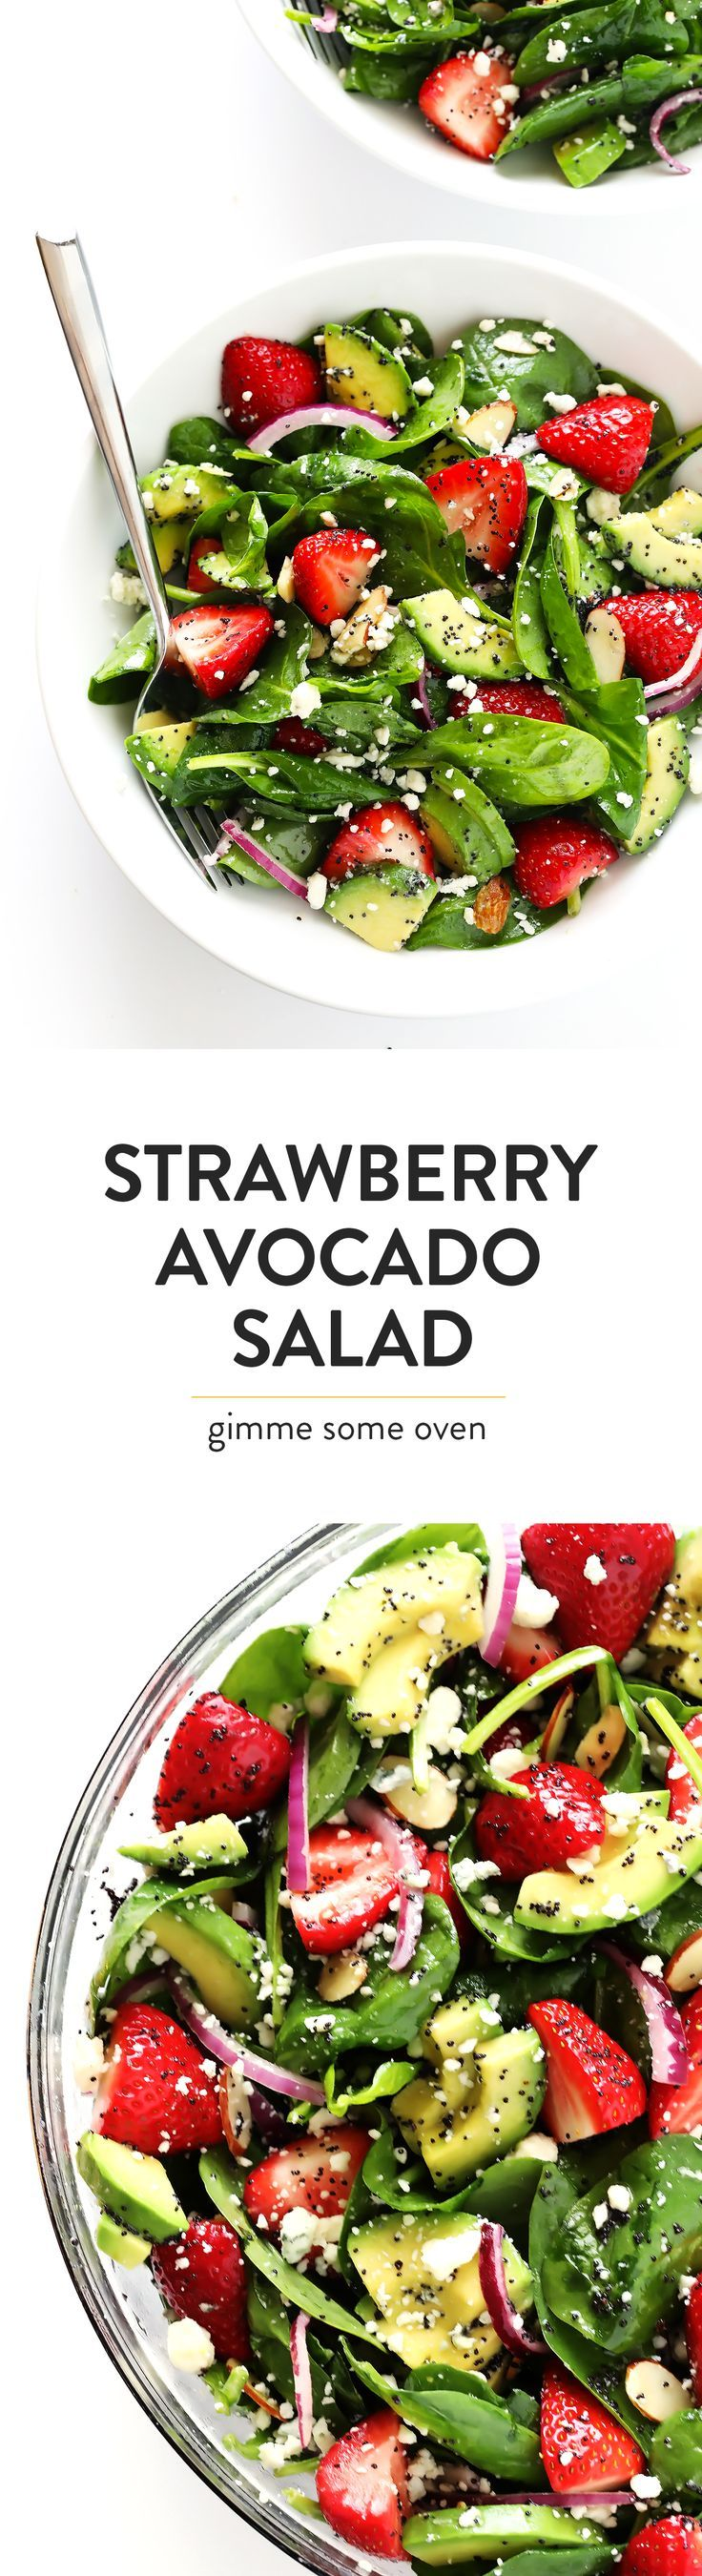 One of my favorite salad recipes!! It's full of strawberries, avocado, red onion, goat (or blue) cheese, and tossed with an easy poppyseed dressing. So fresh and delicious! | http://gimmesomeoven.com